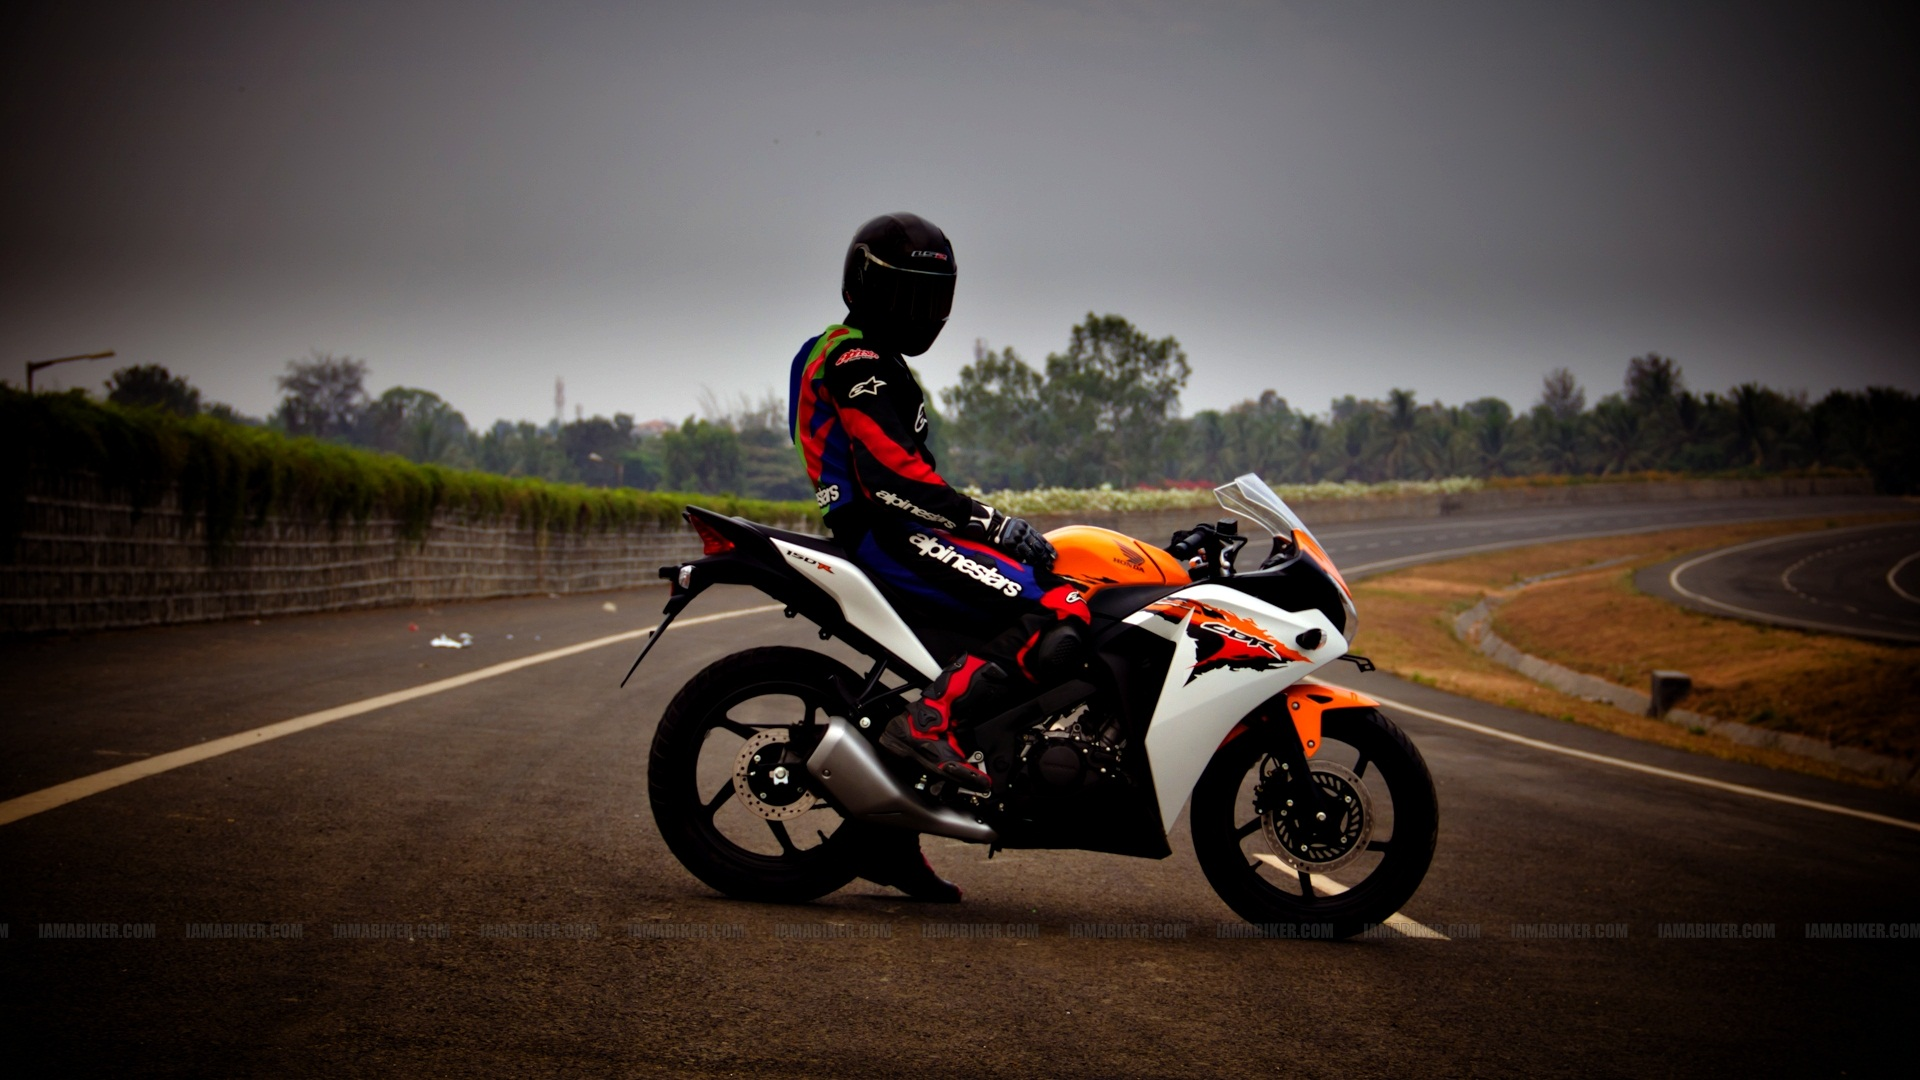 For Those Fans We Have The HD Wallpapers Of Your Favorite Honda CBR 150R To Download These Just Click On Images Open